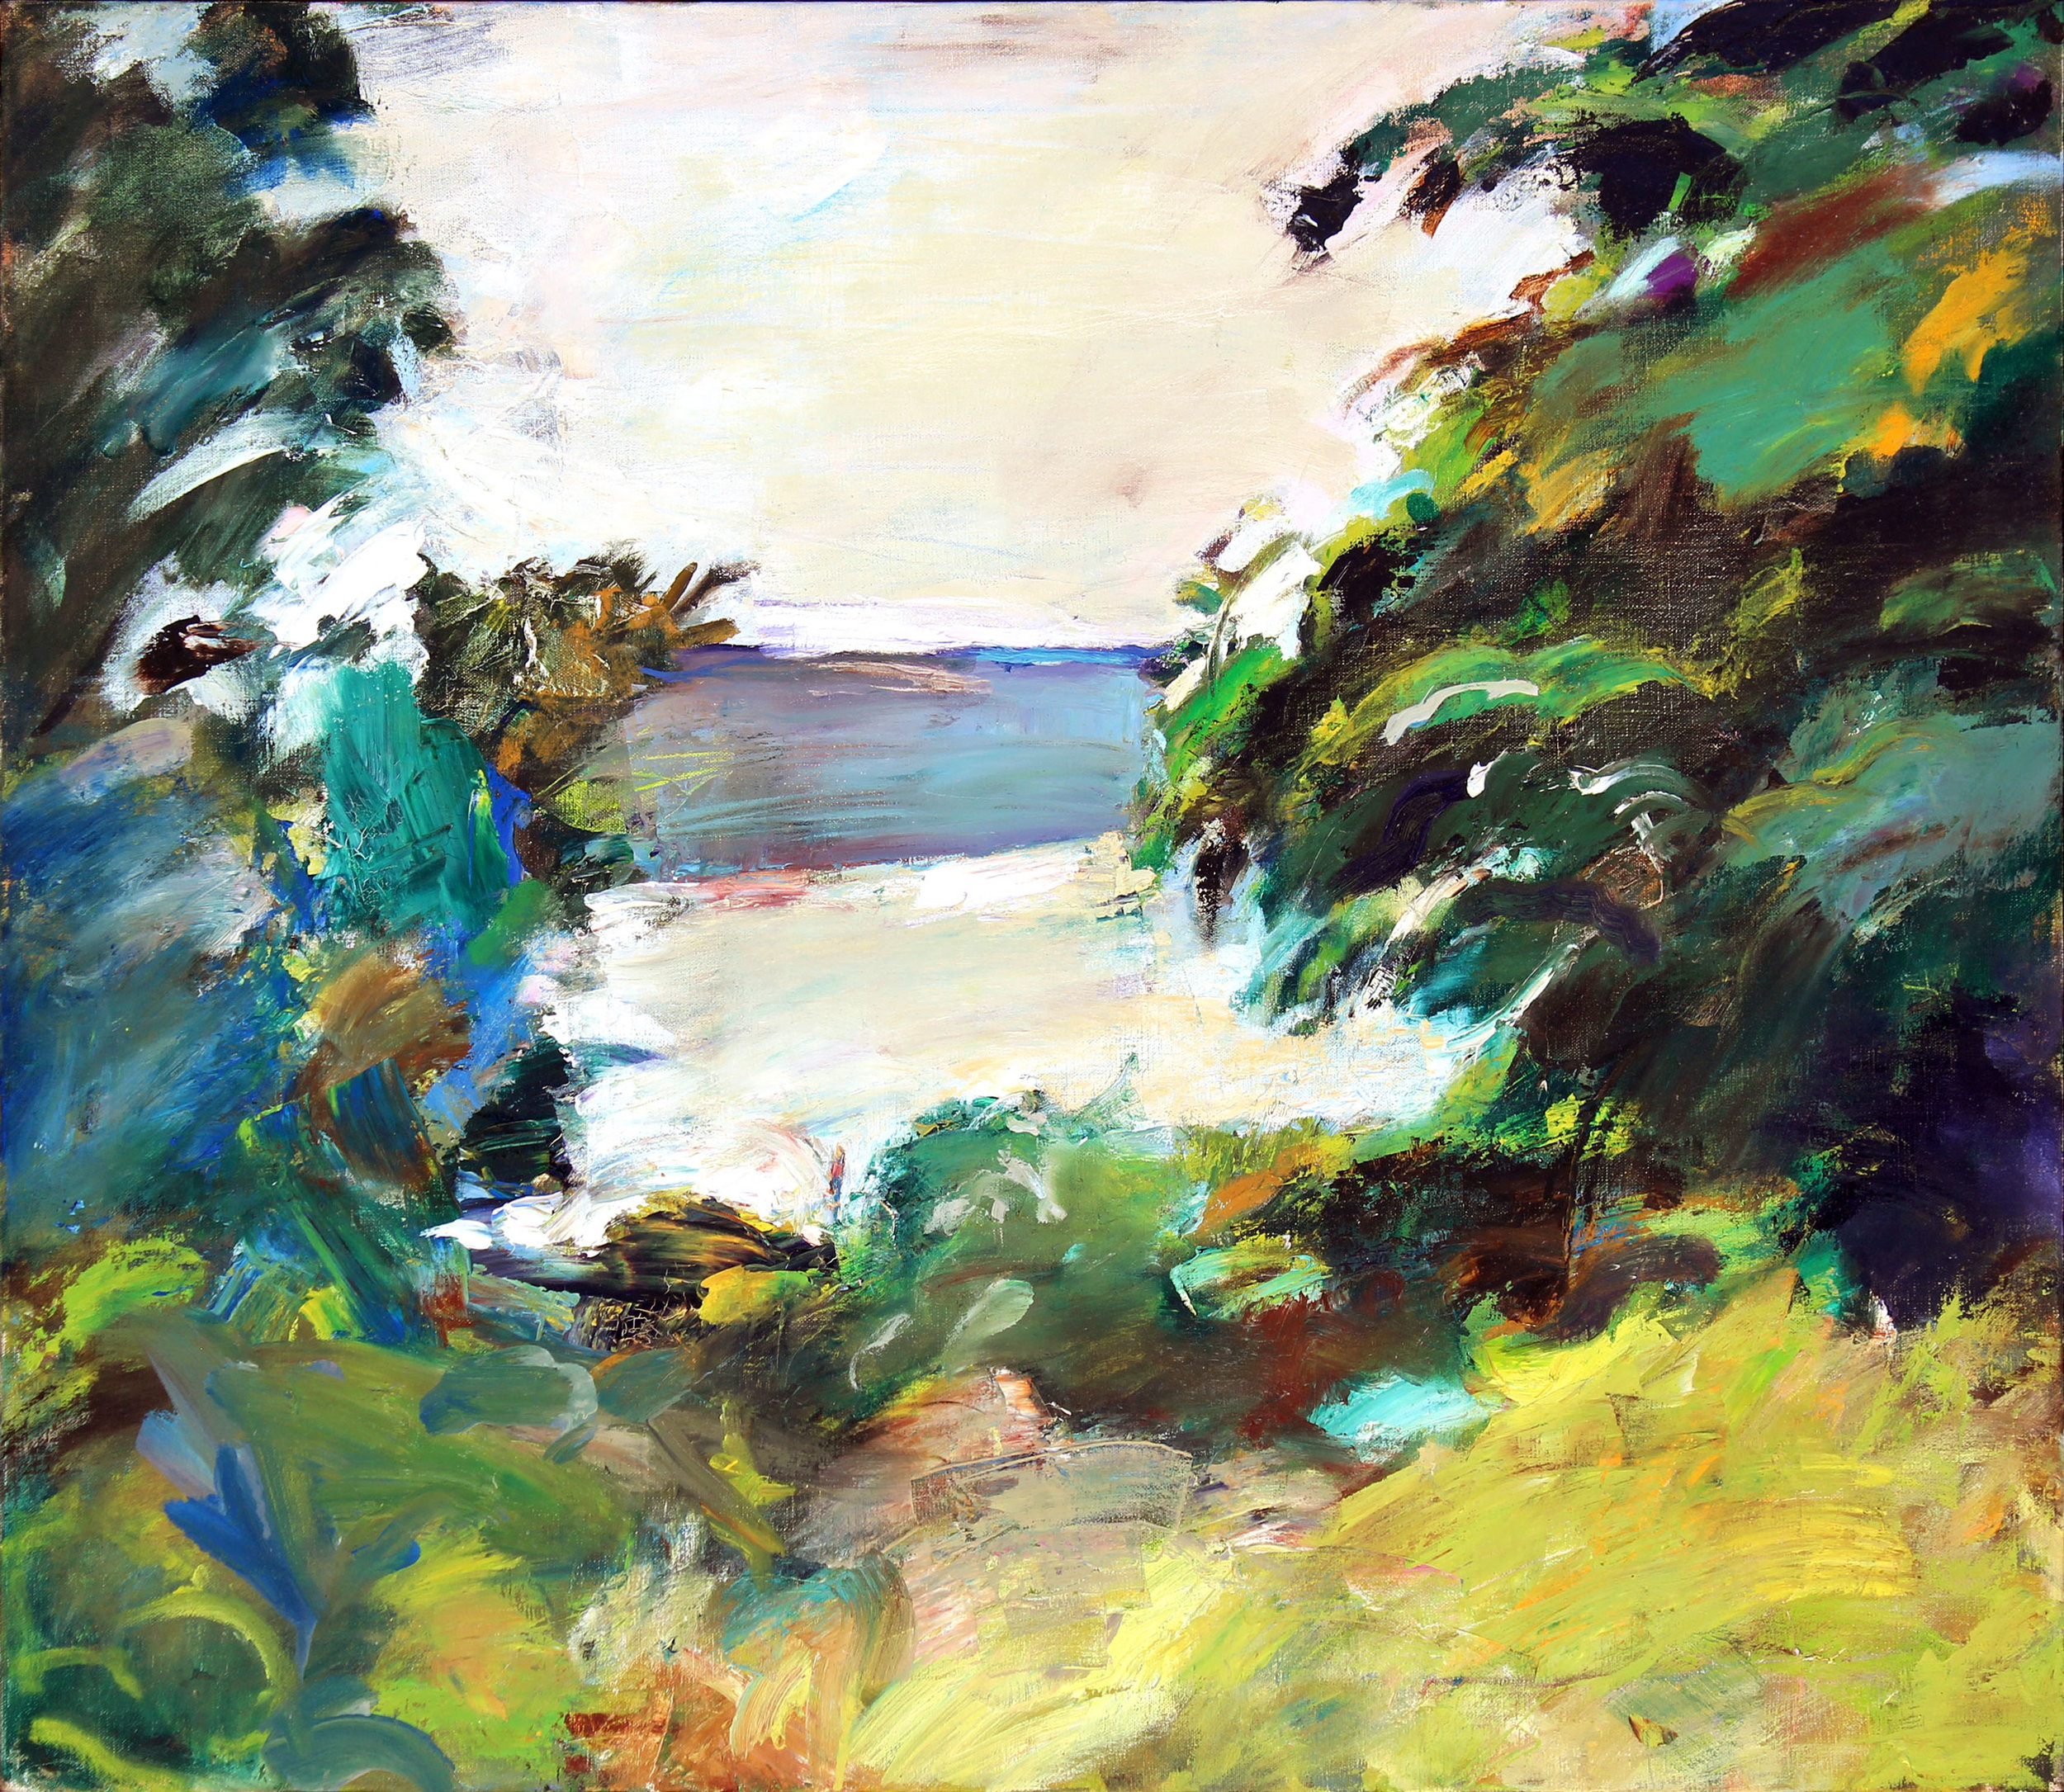 NB7-Palisades-Open-Center-26x30-oil.canvas.jpg